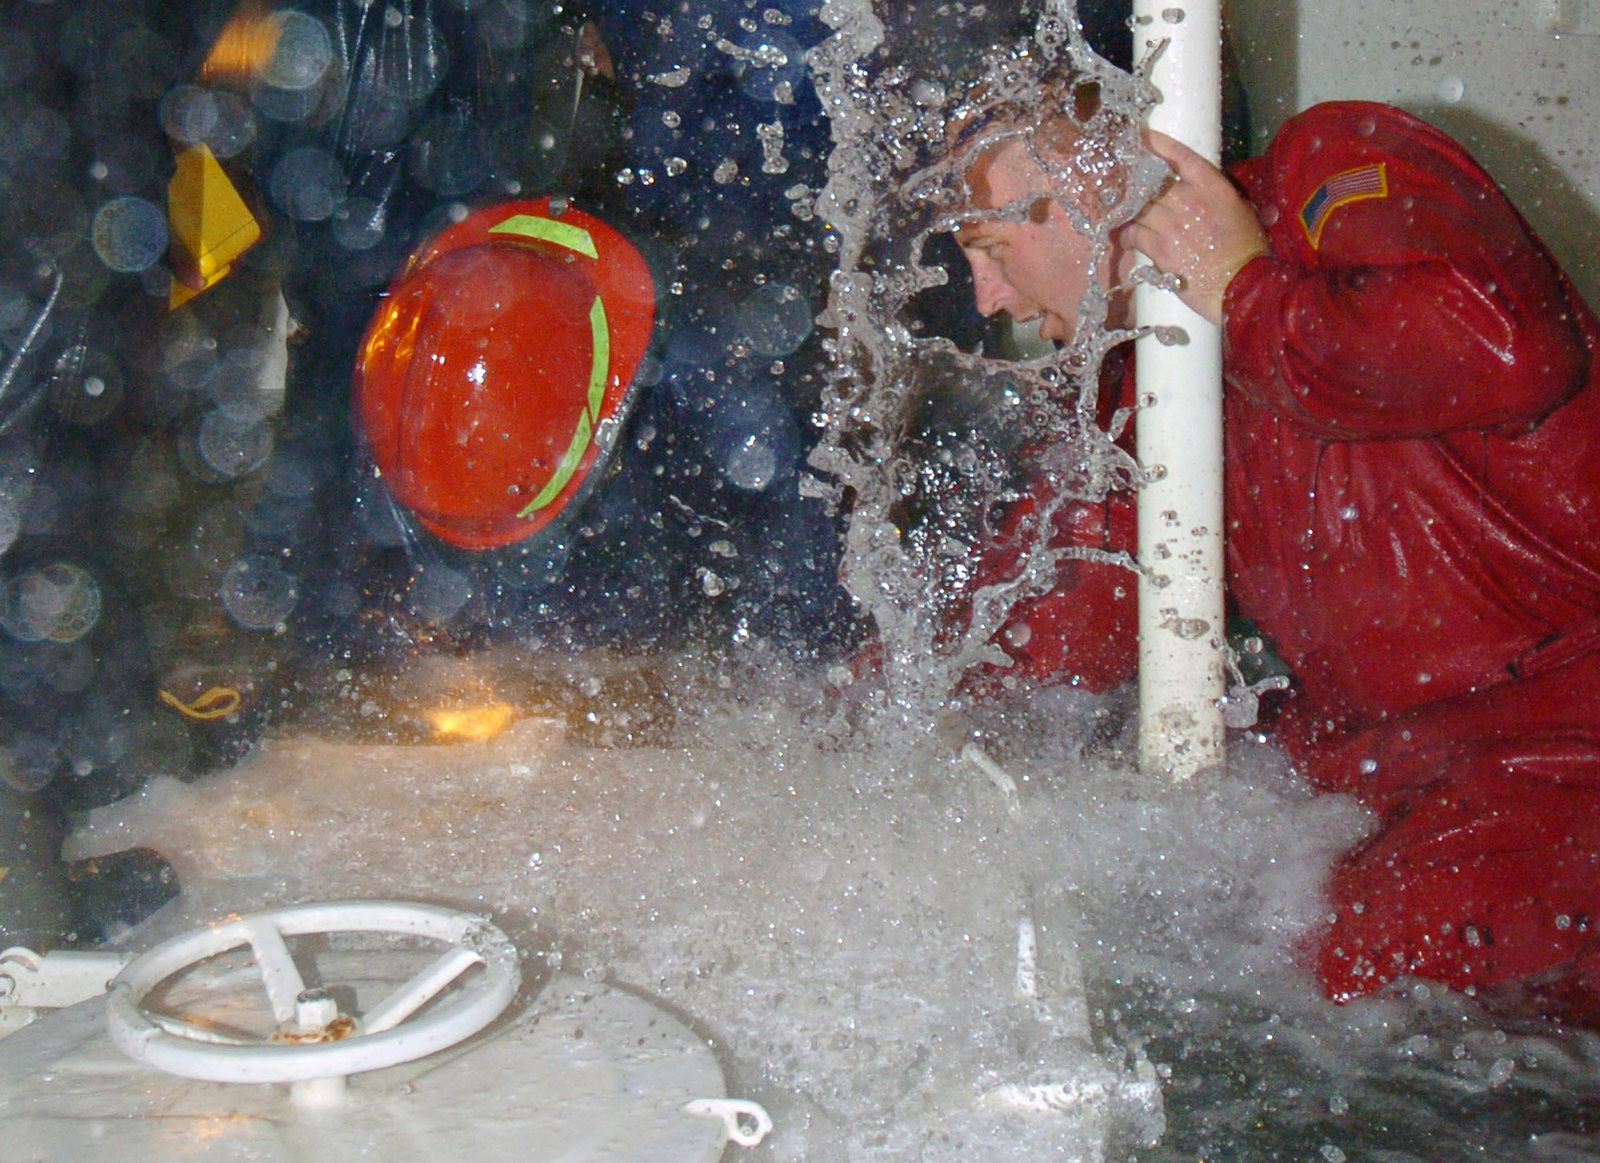 US Navy (USN) Damage Controlman First Class (DC1) Schoen Riley (right), trains Japan Maritime Self Defense Force (JMSDF) Sailors on dewatering techniques during the flooding portion of damage control training. Naval Station San Diego is hosting three JMSDF ships and providing their Sailors with specialized training during their visit